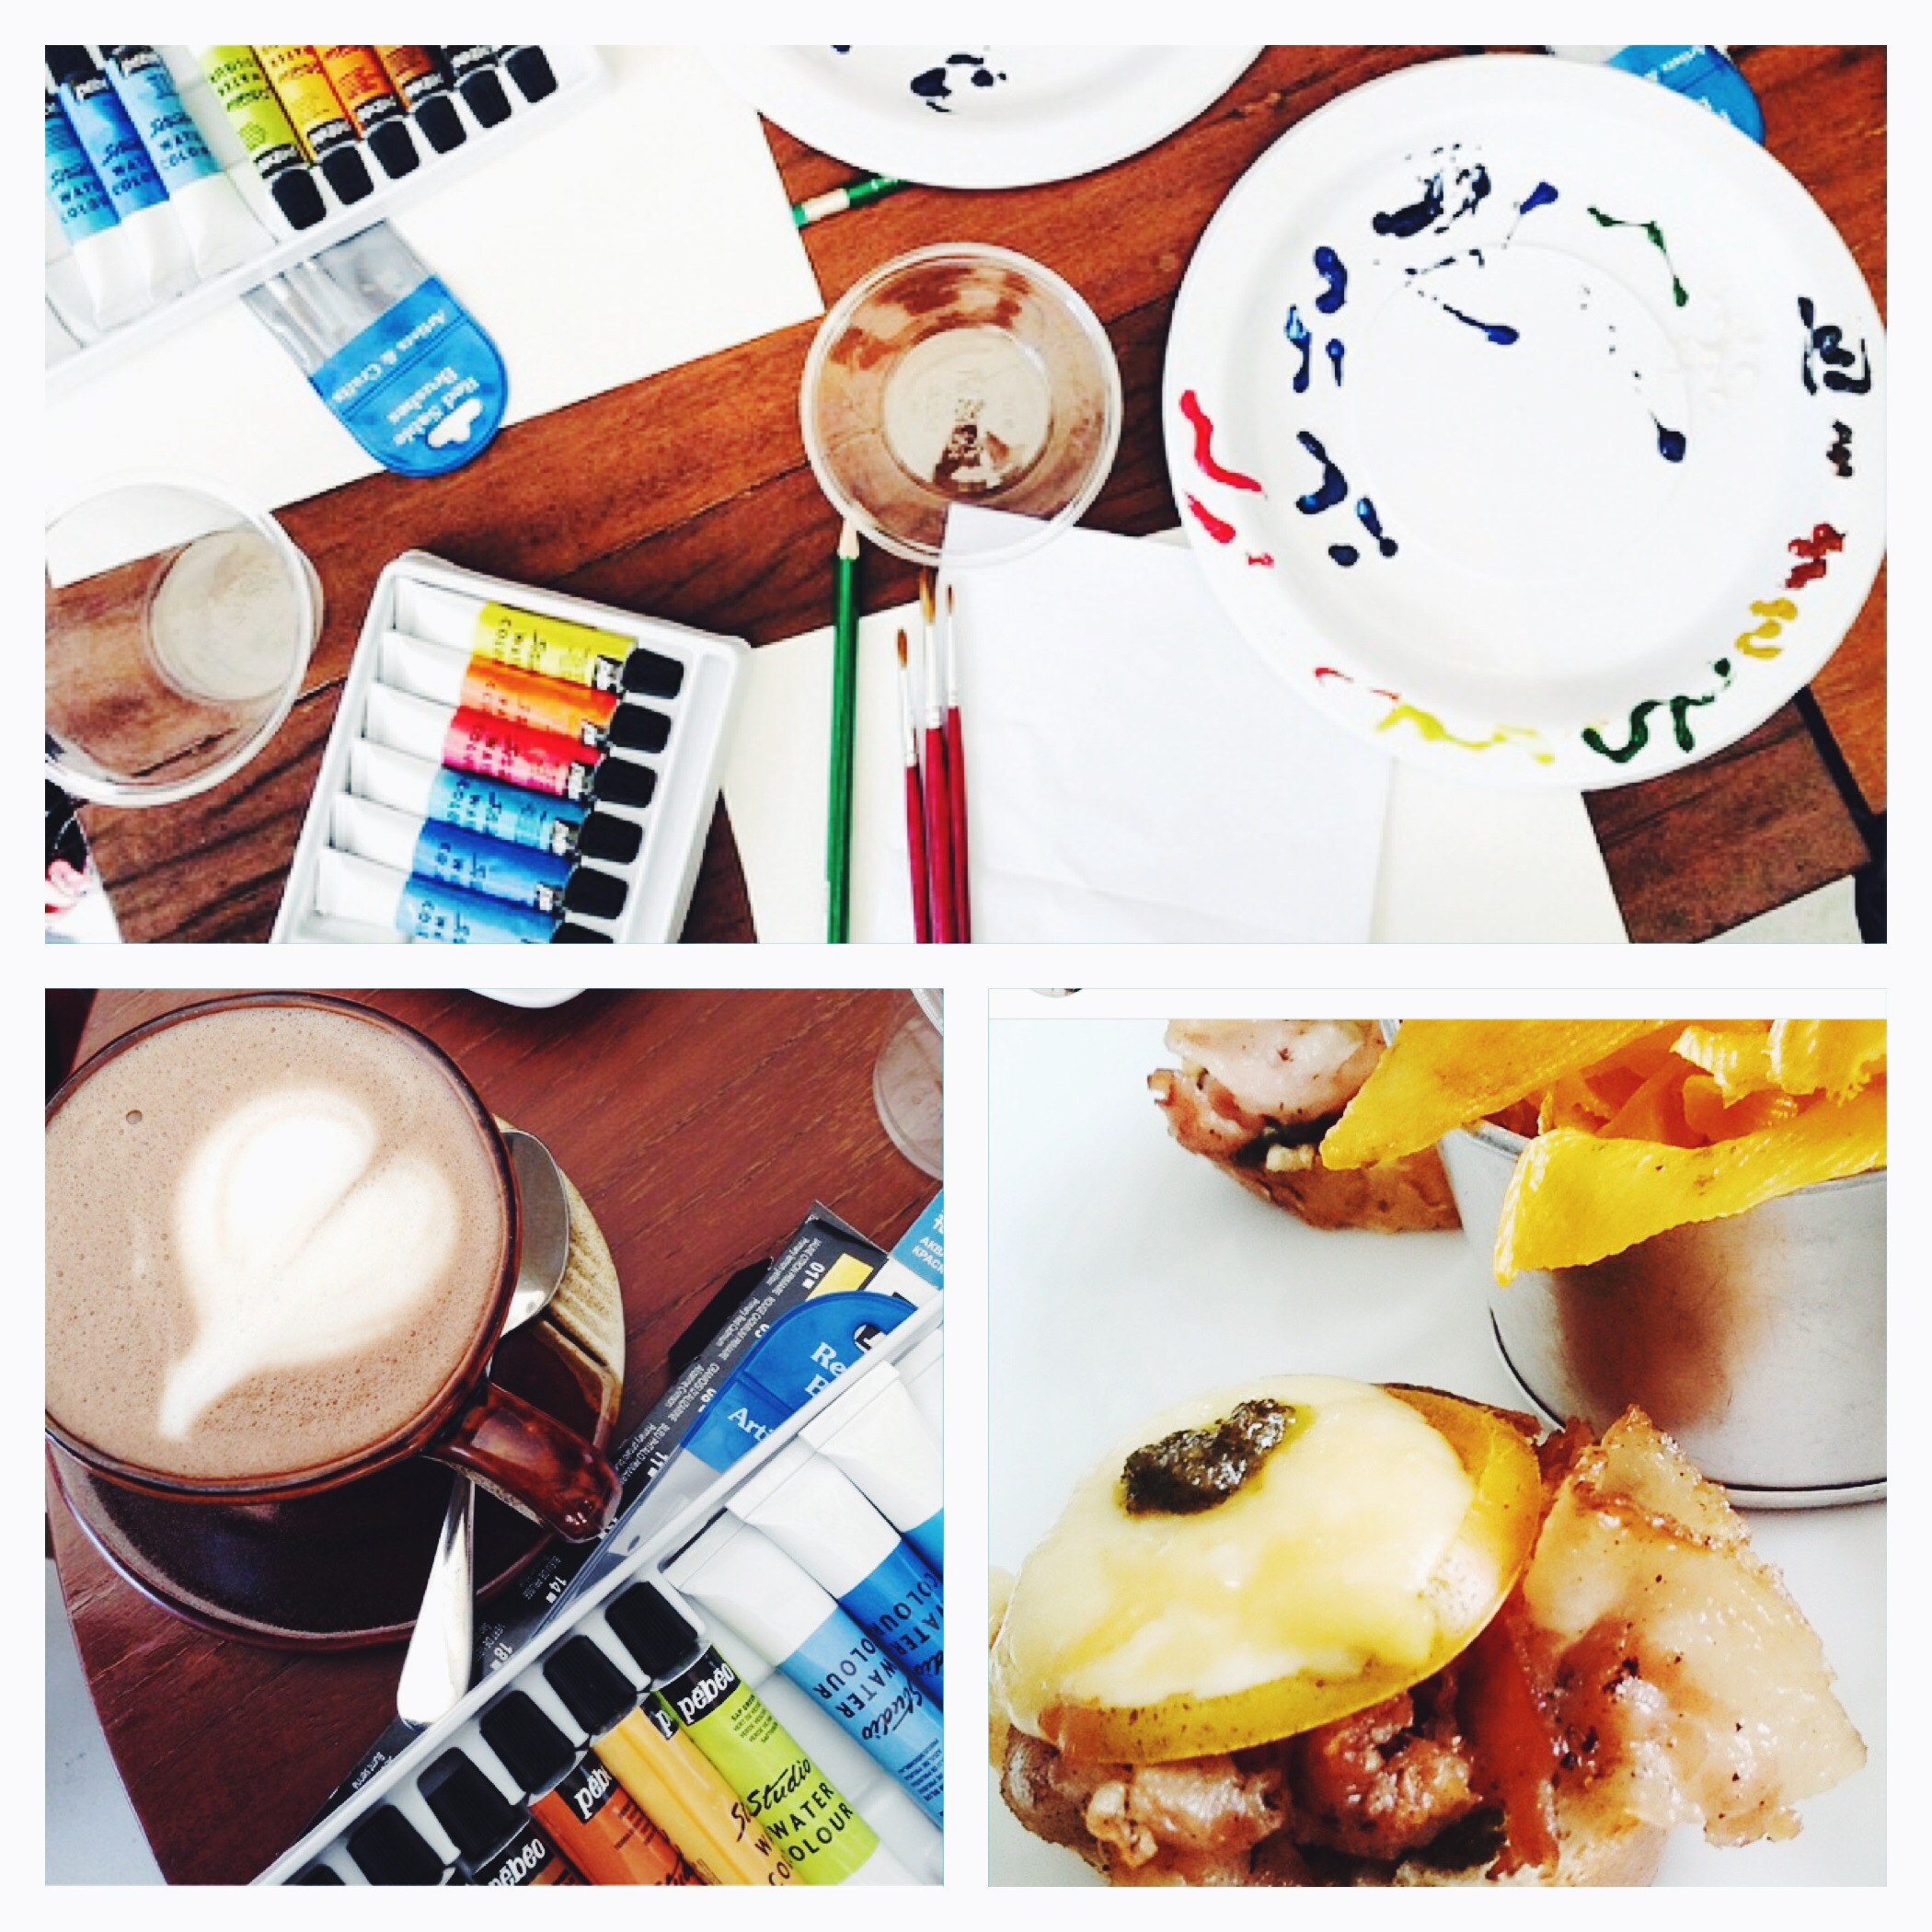 Paint, coffee, good food, and company - the recipe for the perfect Saturday morning